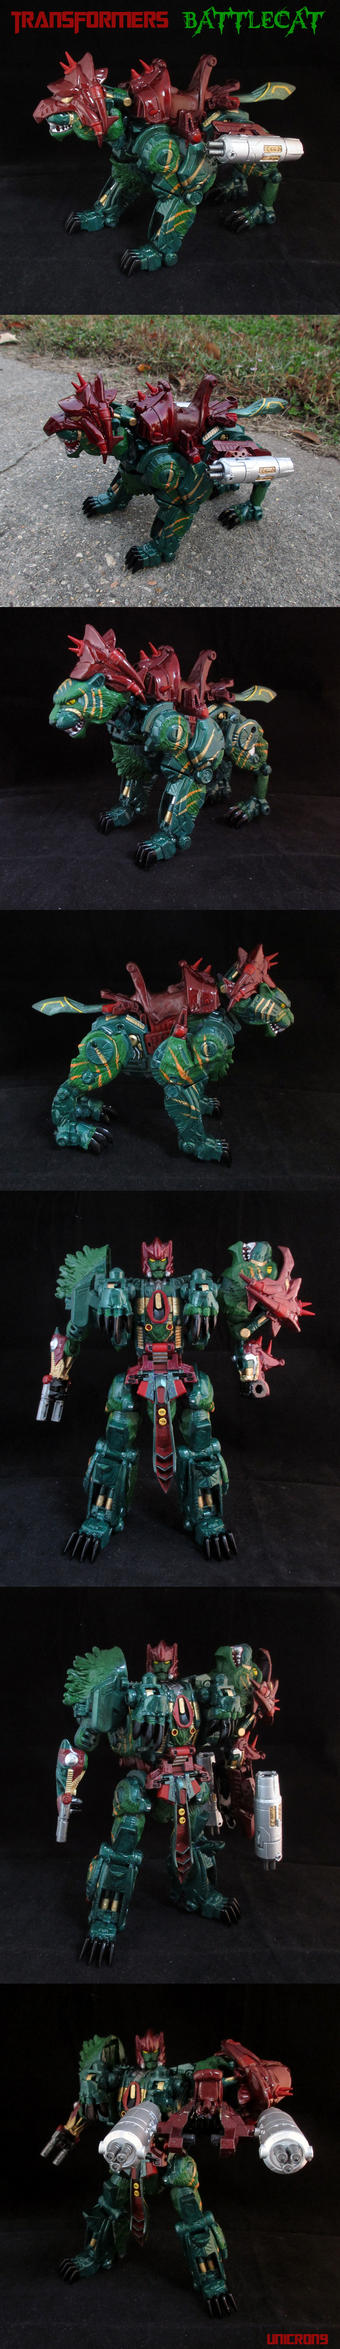 Transformers/MOTU Crossover Battlecat by Unicron9